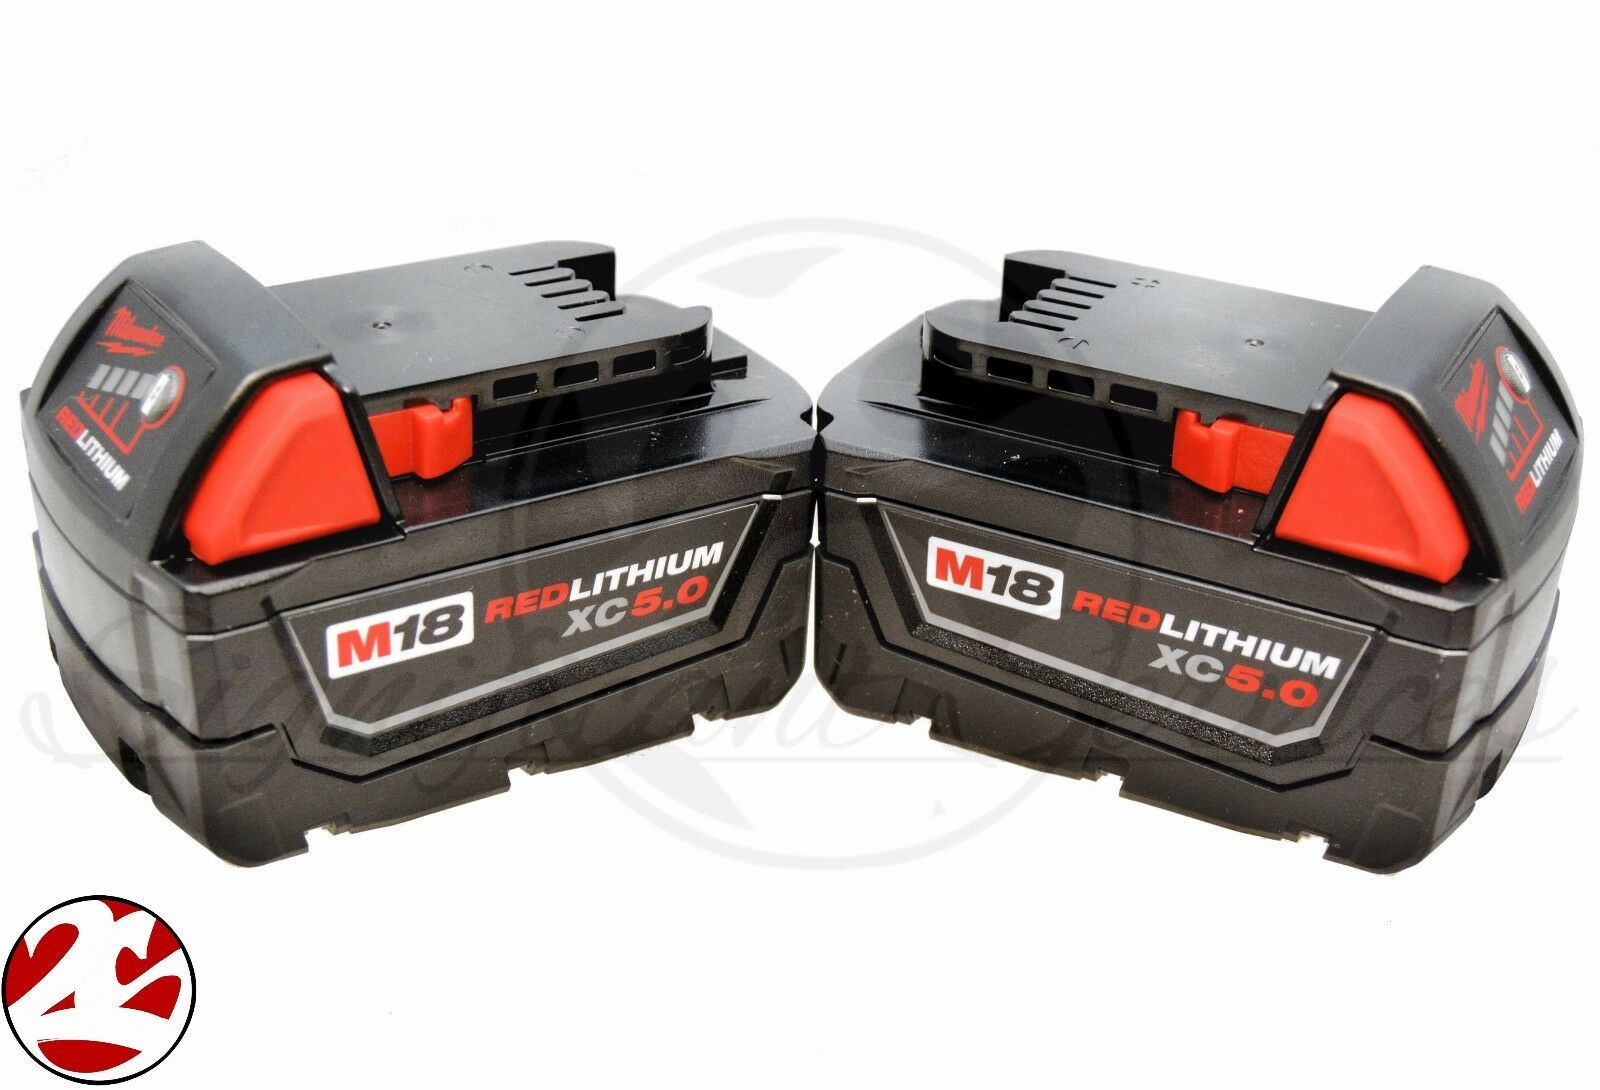 (Qty 2) Milwaukee M18 Red Lithium XC 5.0 AH Extended Capacity Battery 48-11-1852 2